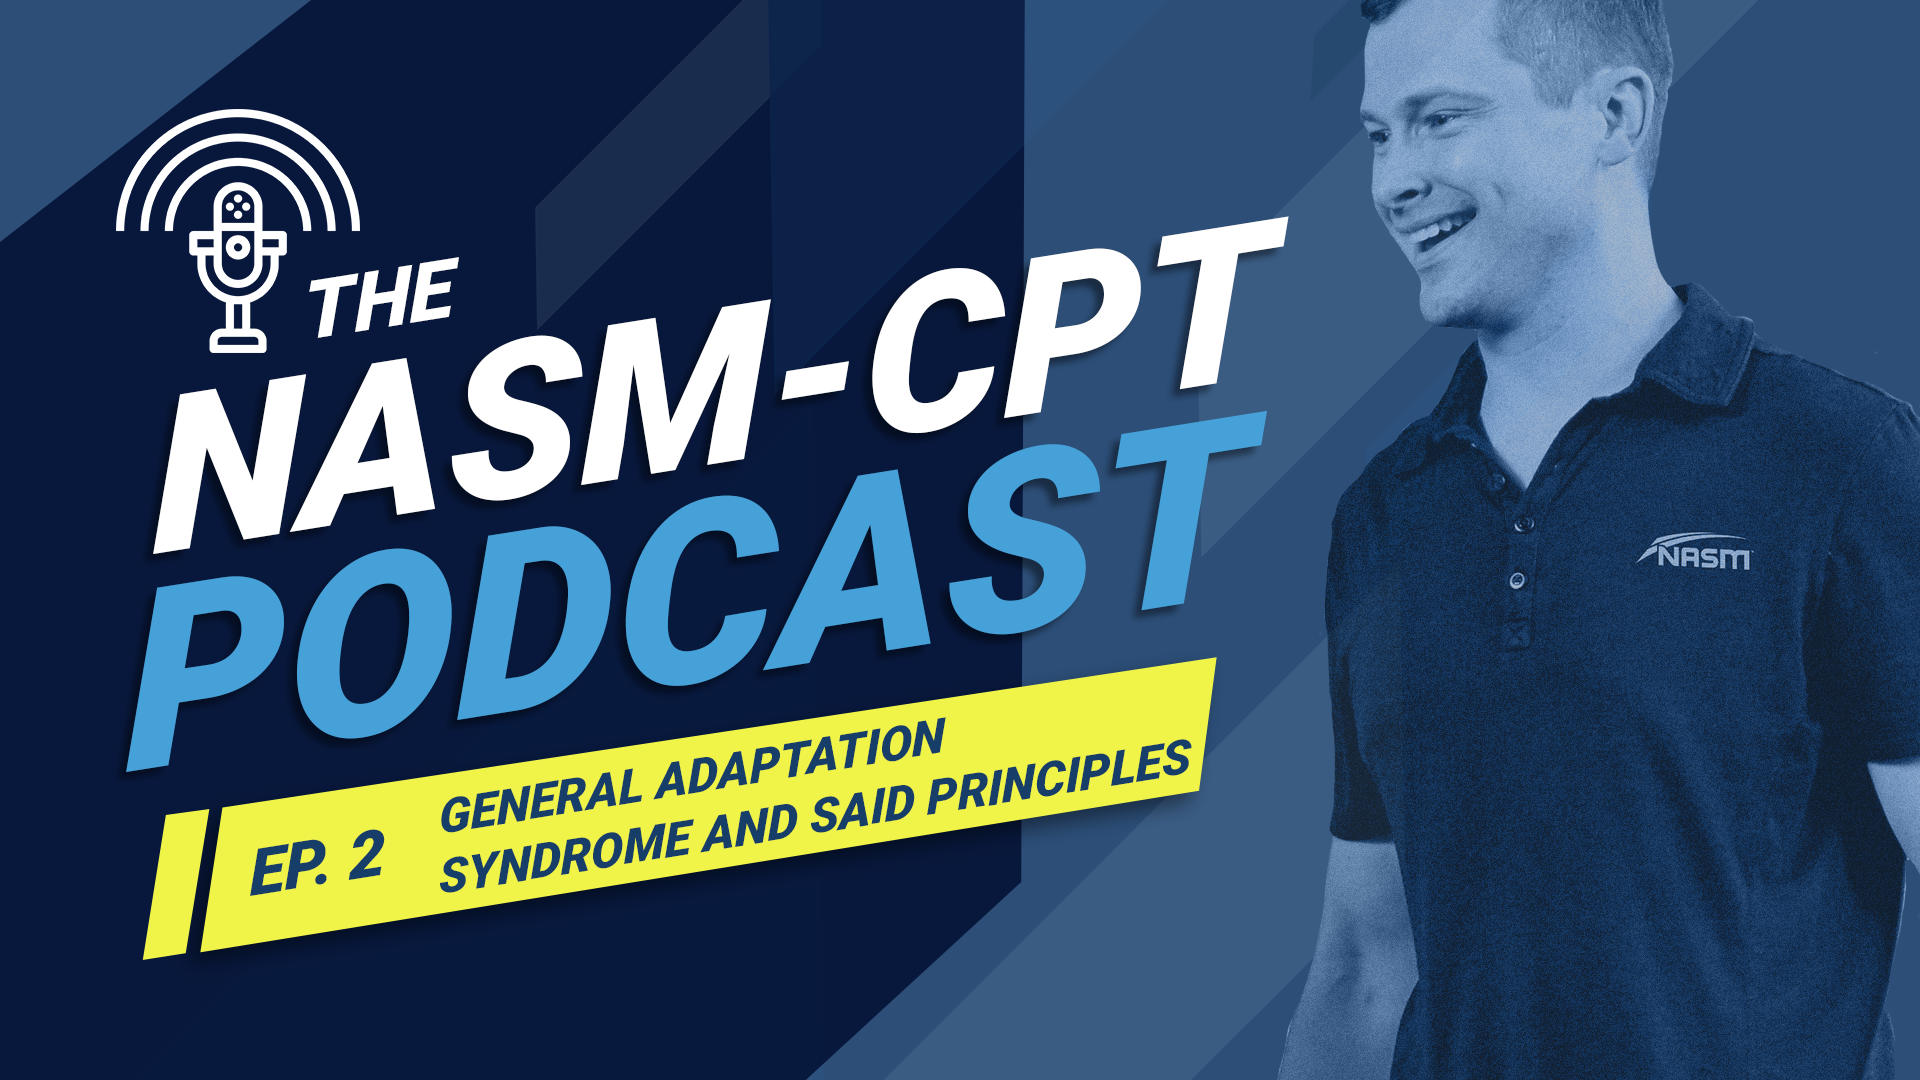 THE NASM-CPT PODCAST: General Adaptation Syndrome and SAID Principles